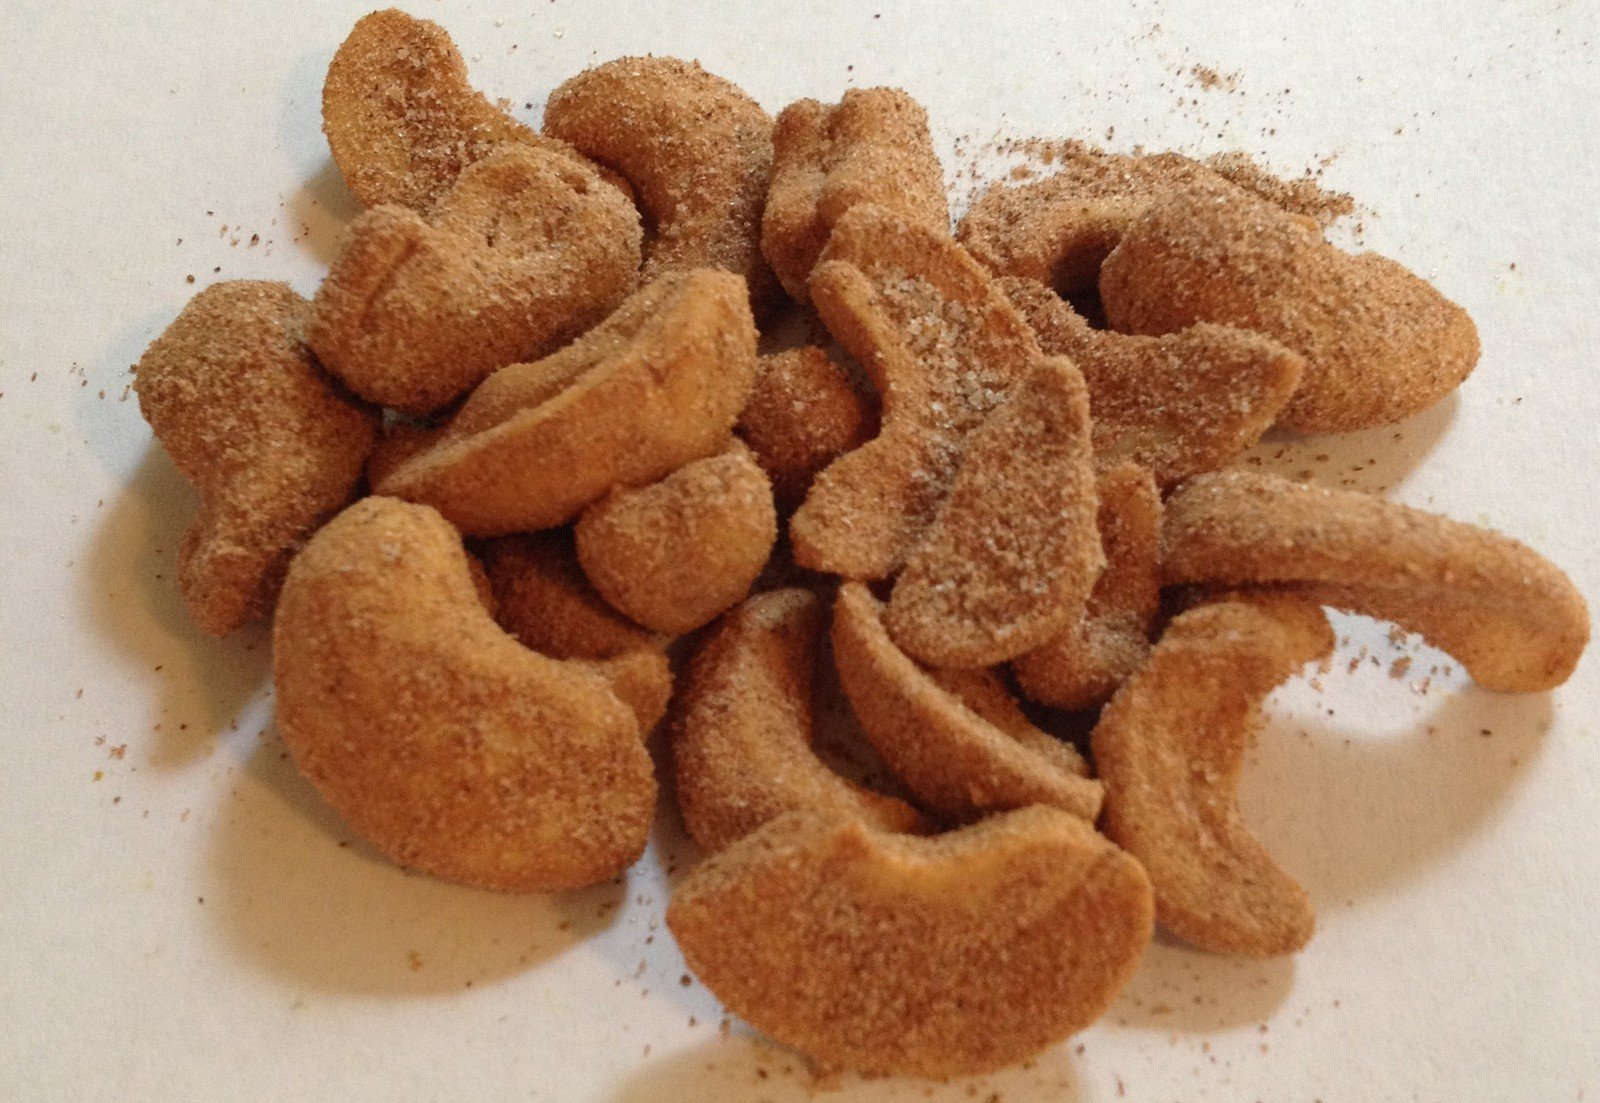 Cashews Cinnamon and Sugar